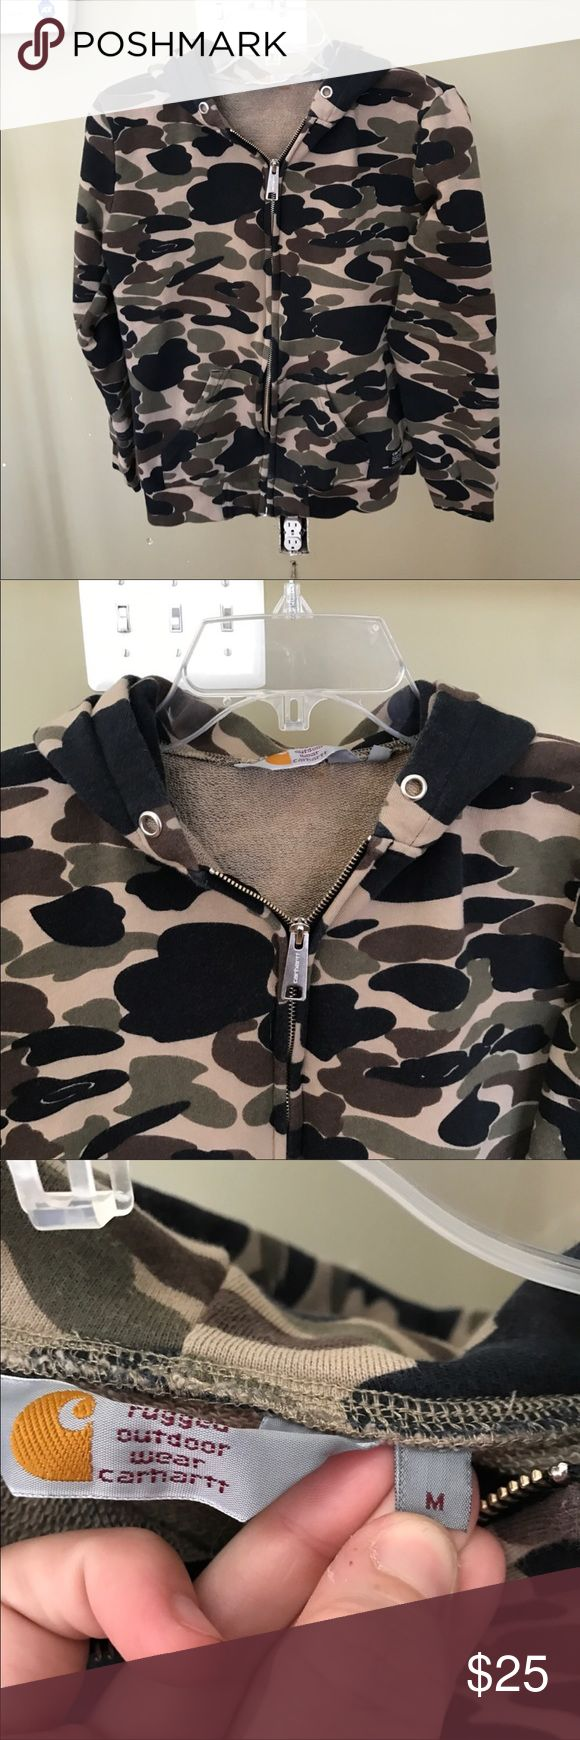 Carhartt Men's Camo Hooded Sweatshirt Worn only a few times, in great condition! Very warm and great for layering. Looser fit. Perfect for men And women Carhartt Shirts Sweatshirts & Hoodies